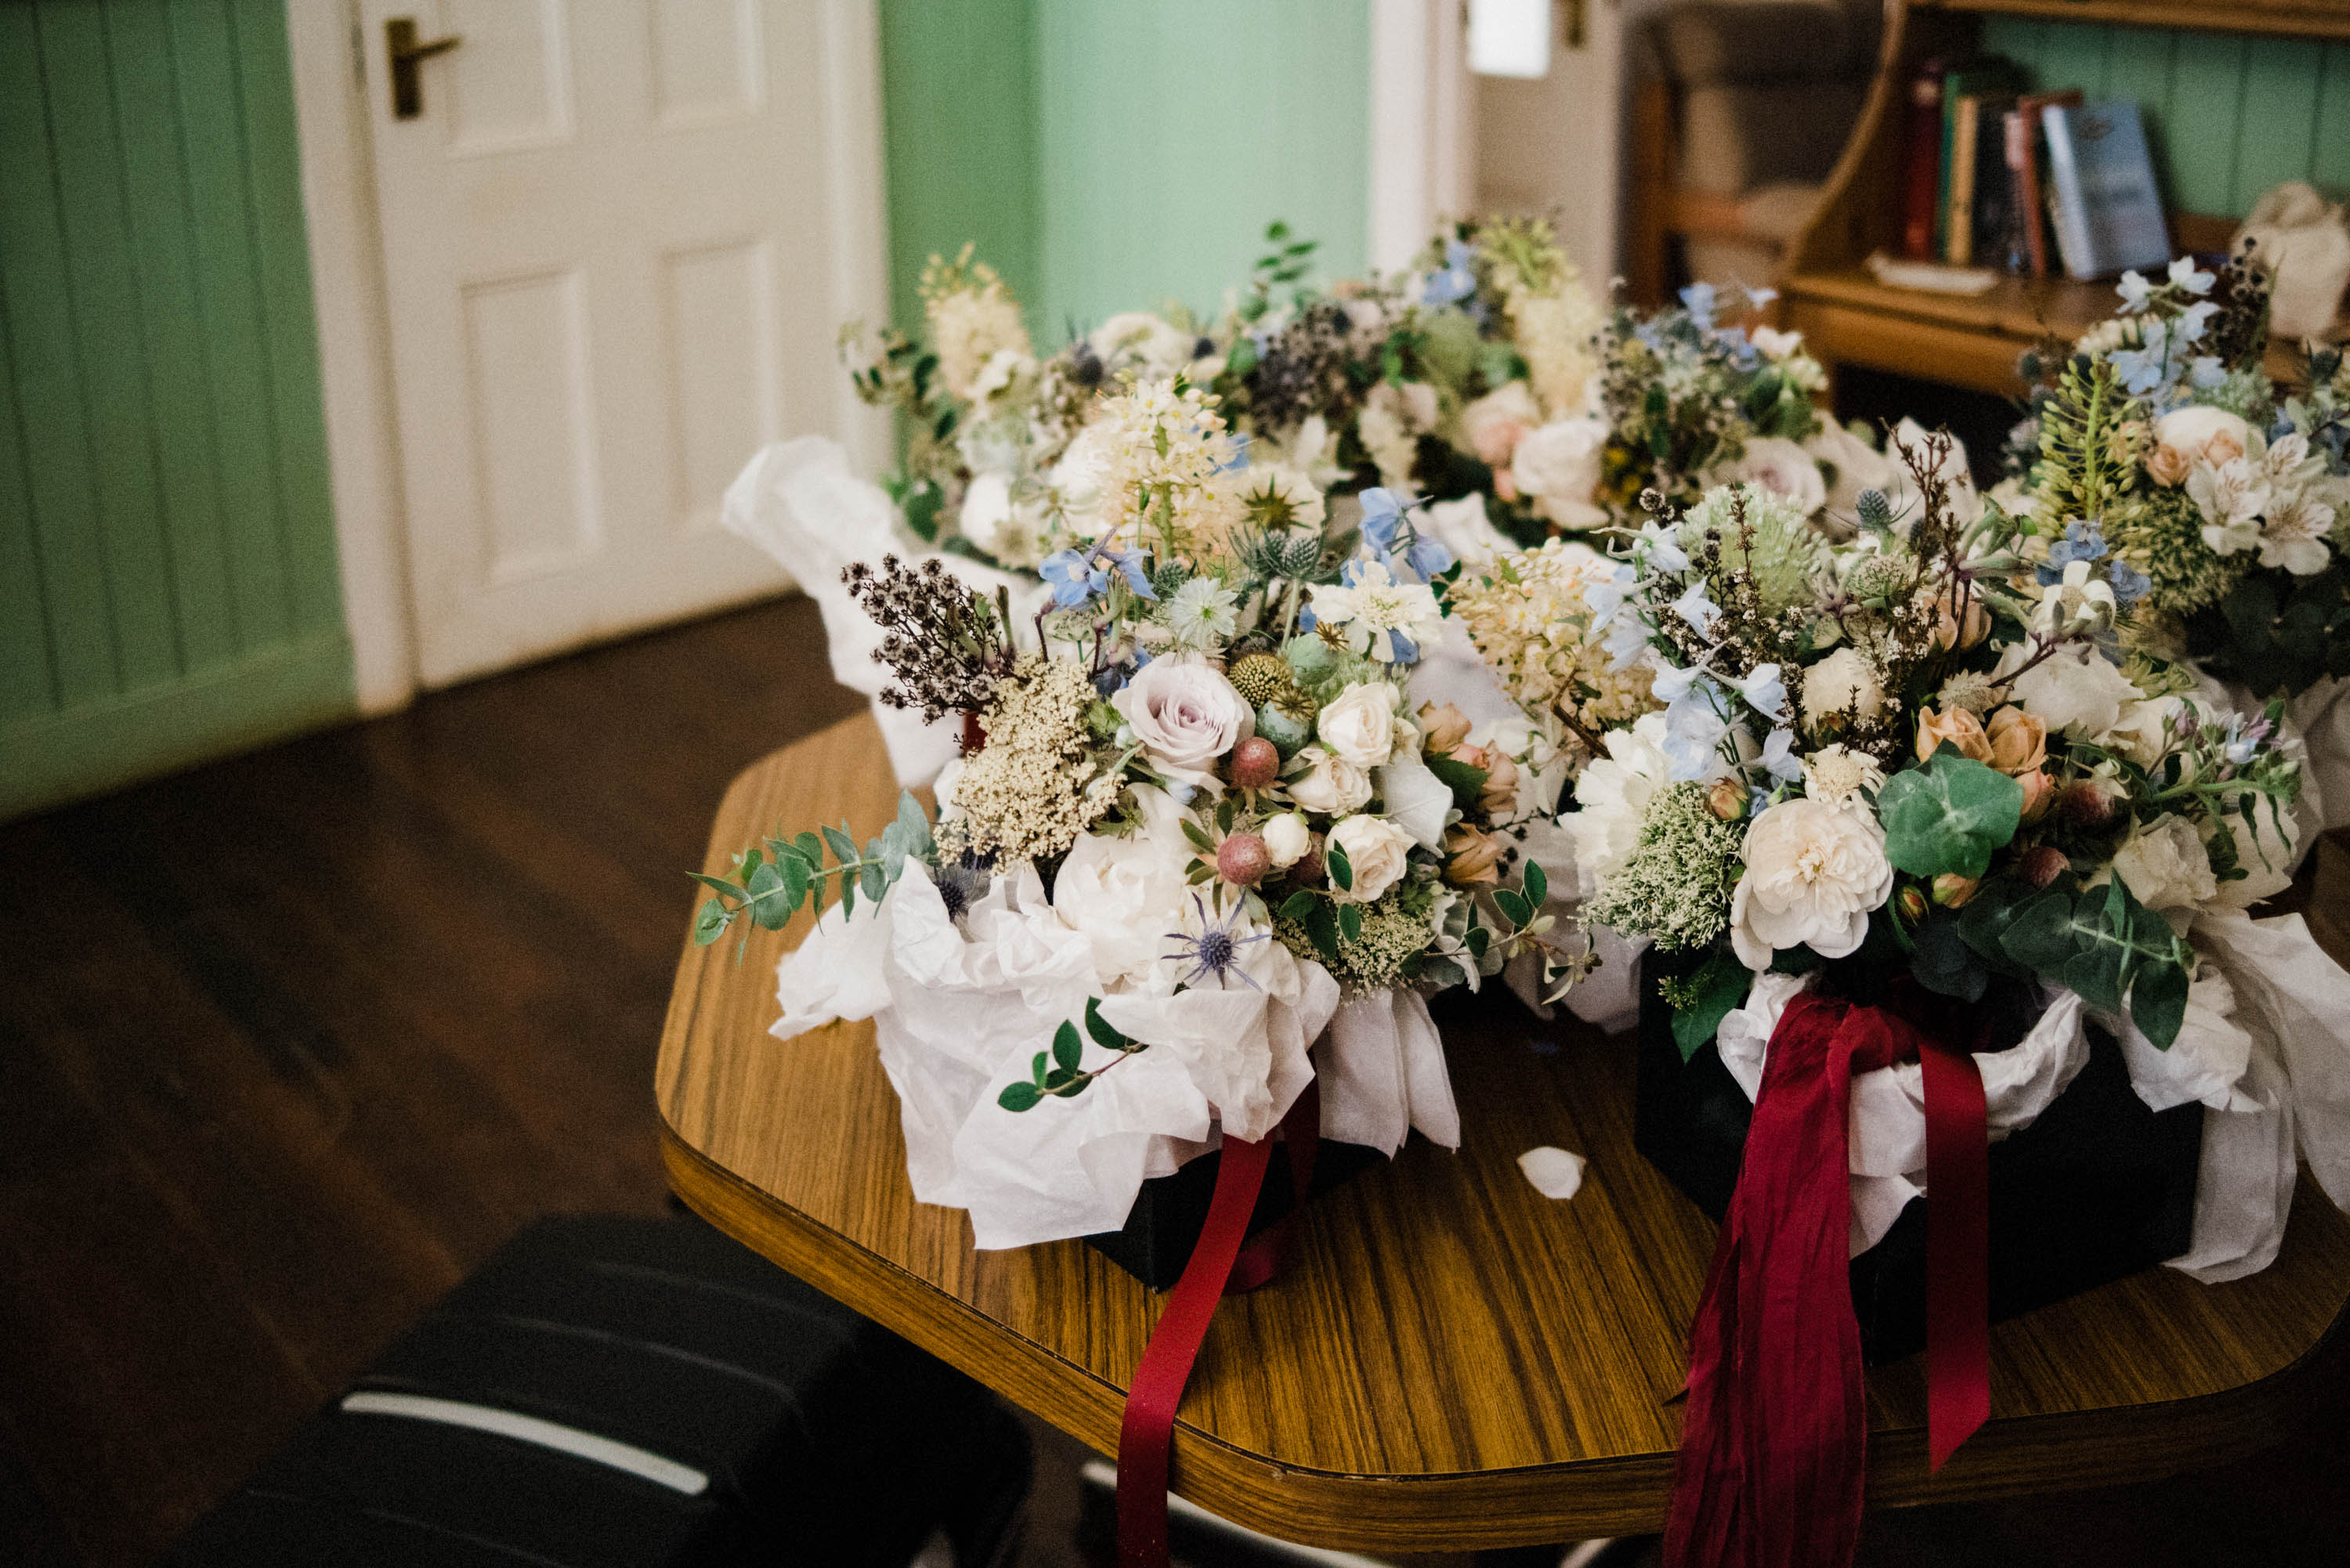 A photo of the bride's bouquet together with bridesmaids' bouquets by Covet Collect at a Donnelly River Village wedding.